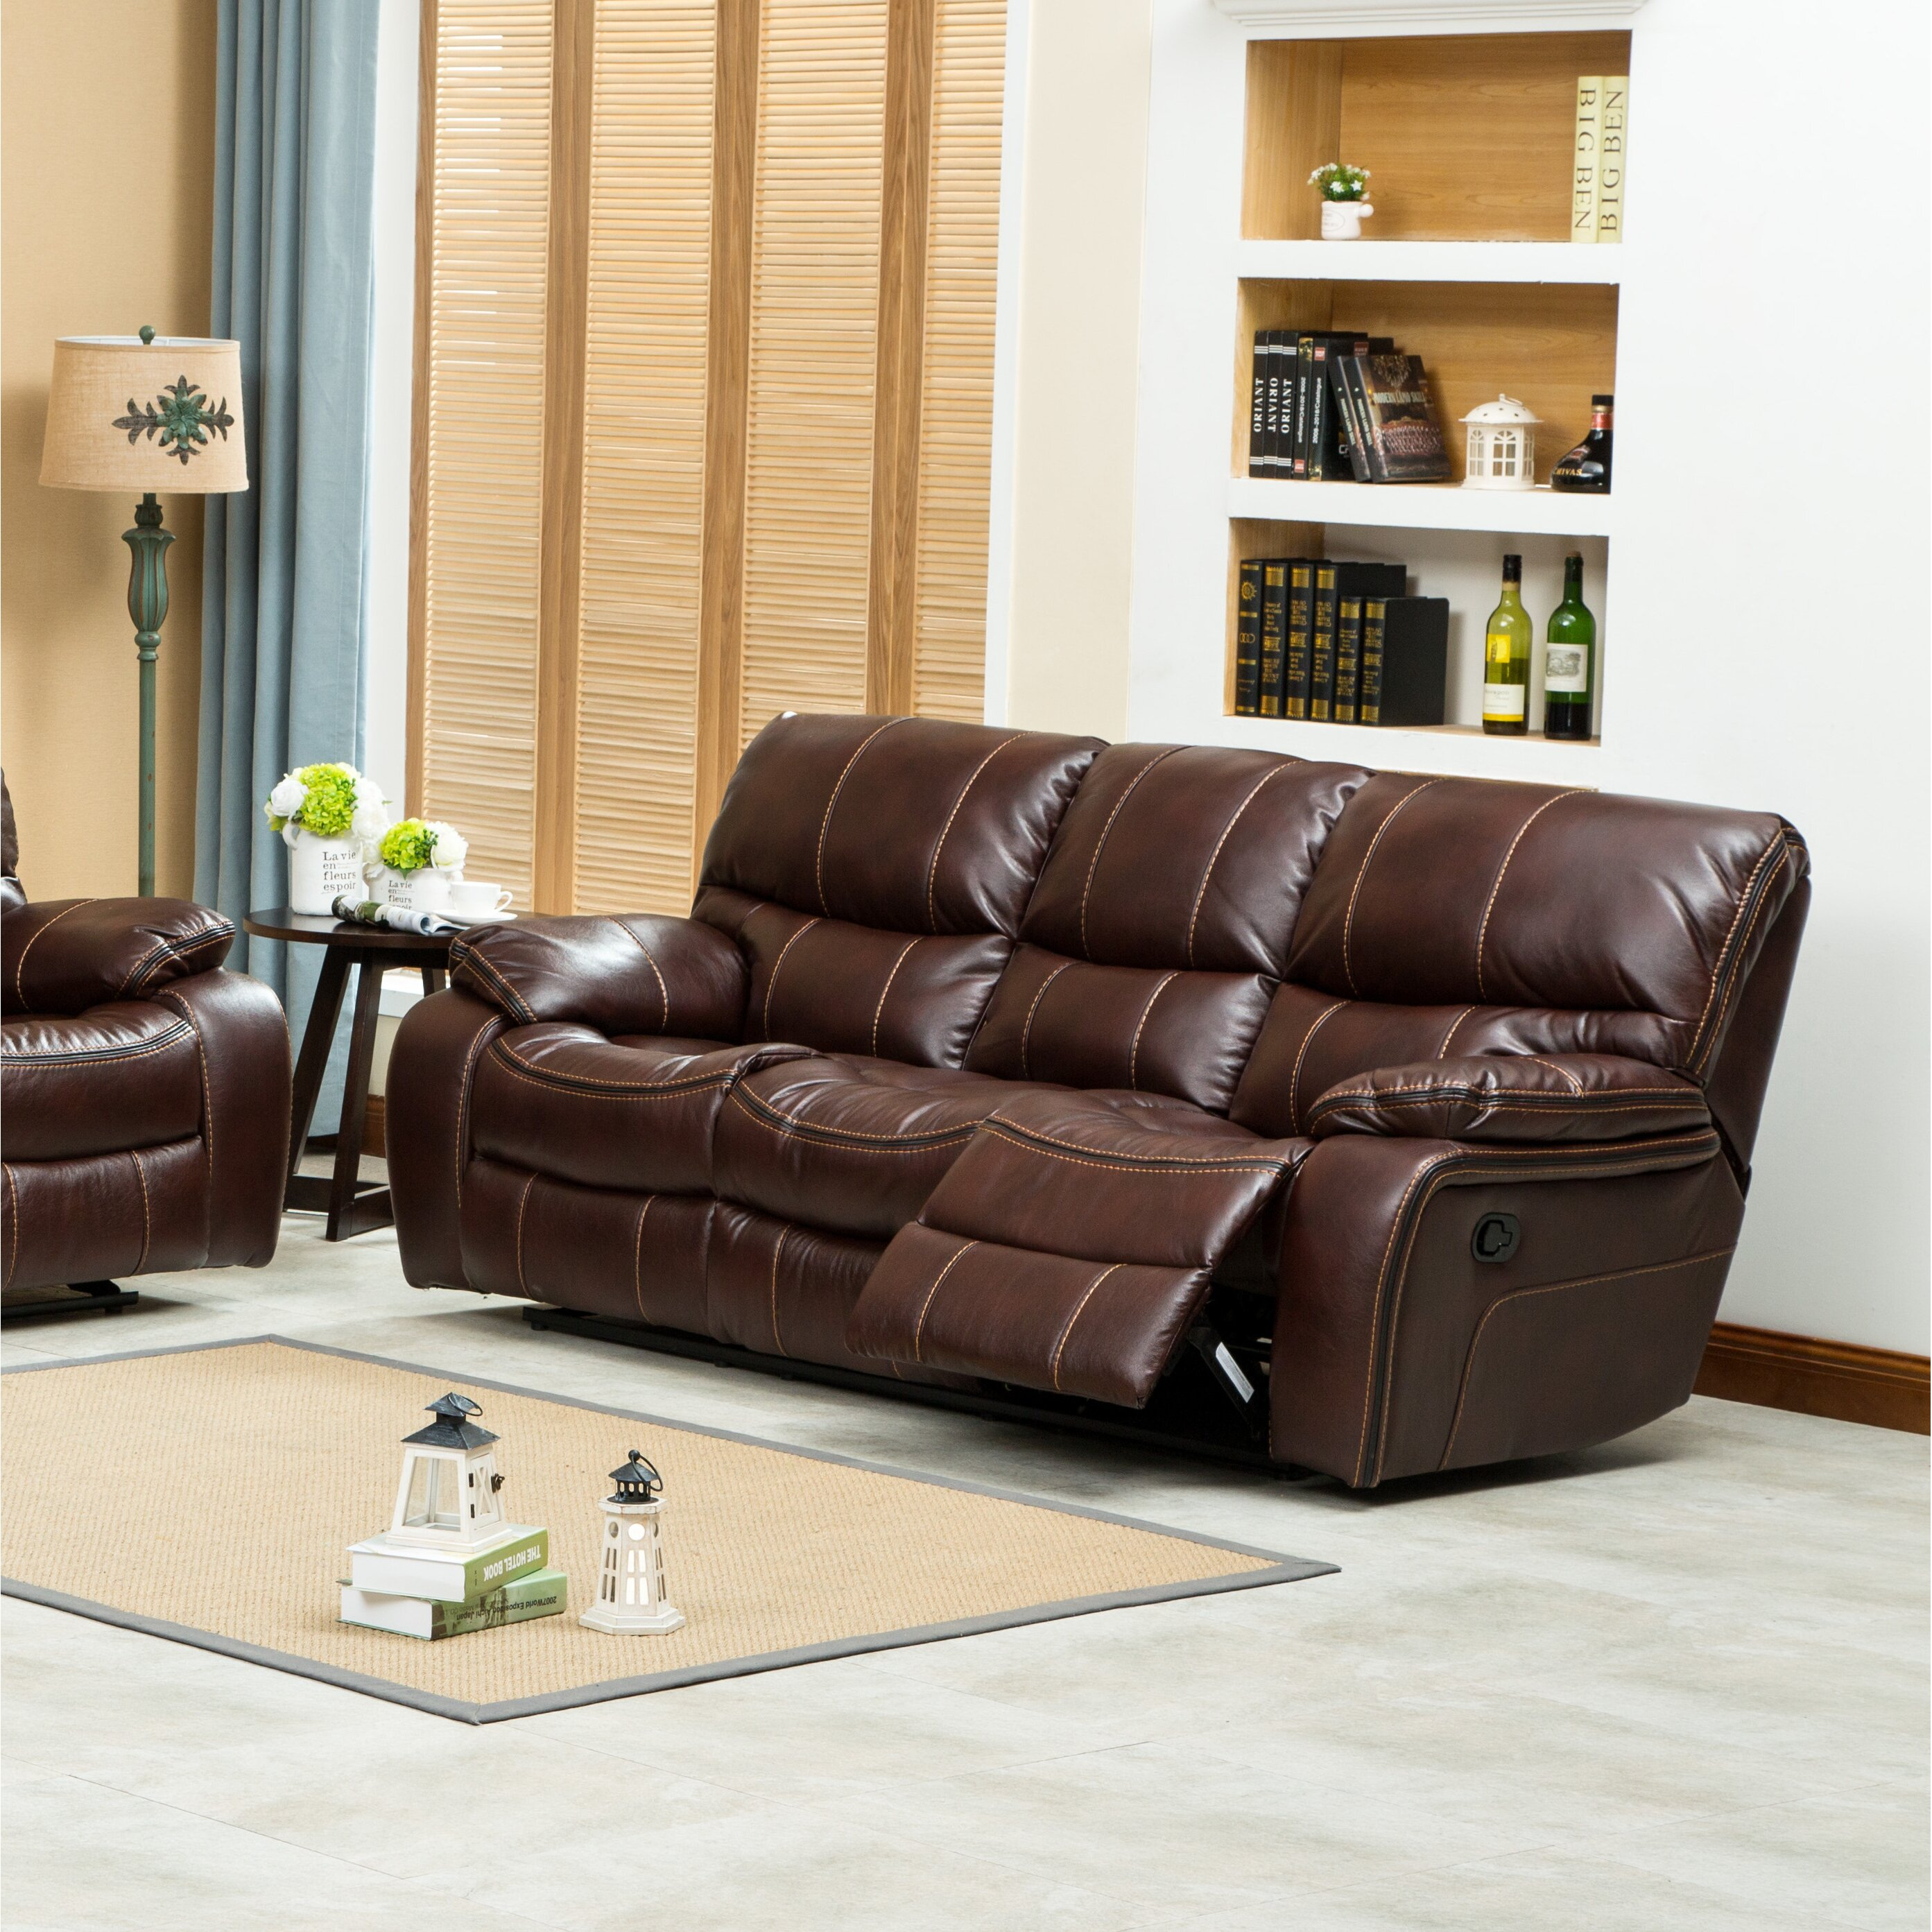 Leather Living Room Sets On Roundhill Furniture Ewa 3 Piece Reclining Leather Living Room Set